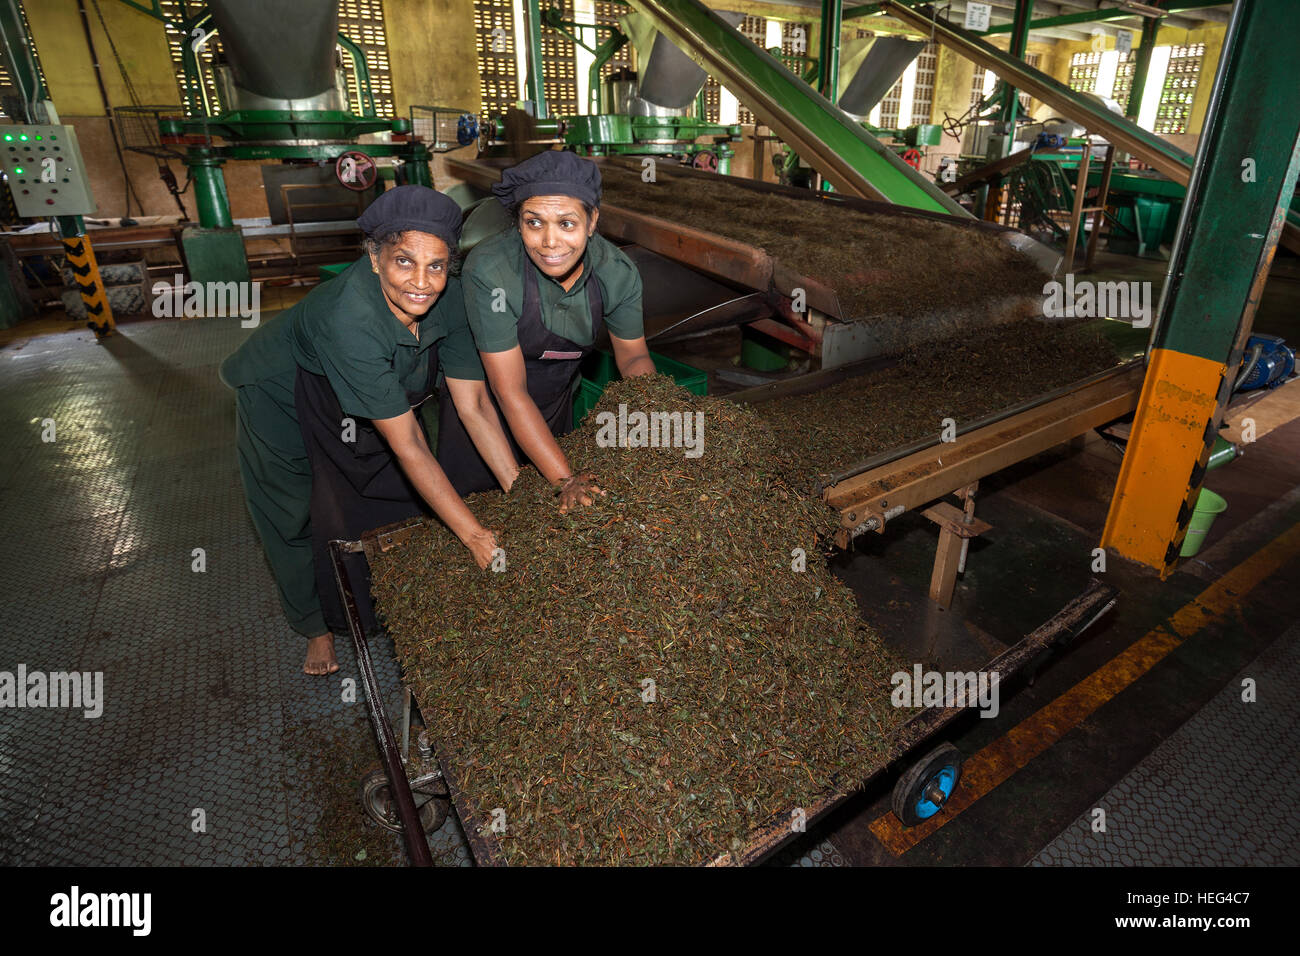 Workers, Tea processing, dried tea on conveyor belts, Glenloch Tea Factory, Thawalanthenna, Central Province, Sri - Stock Image